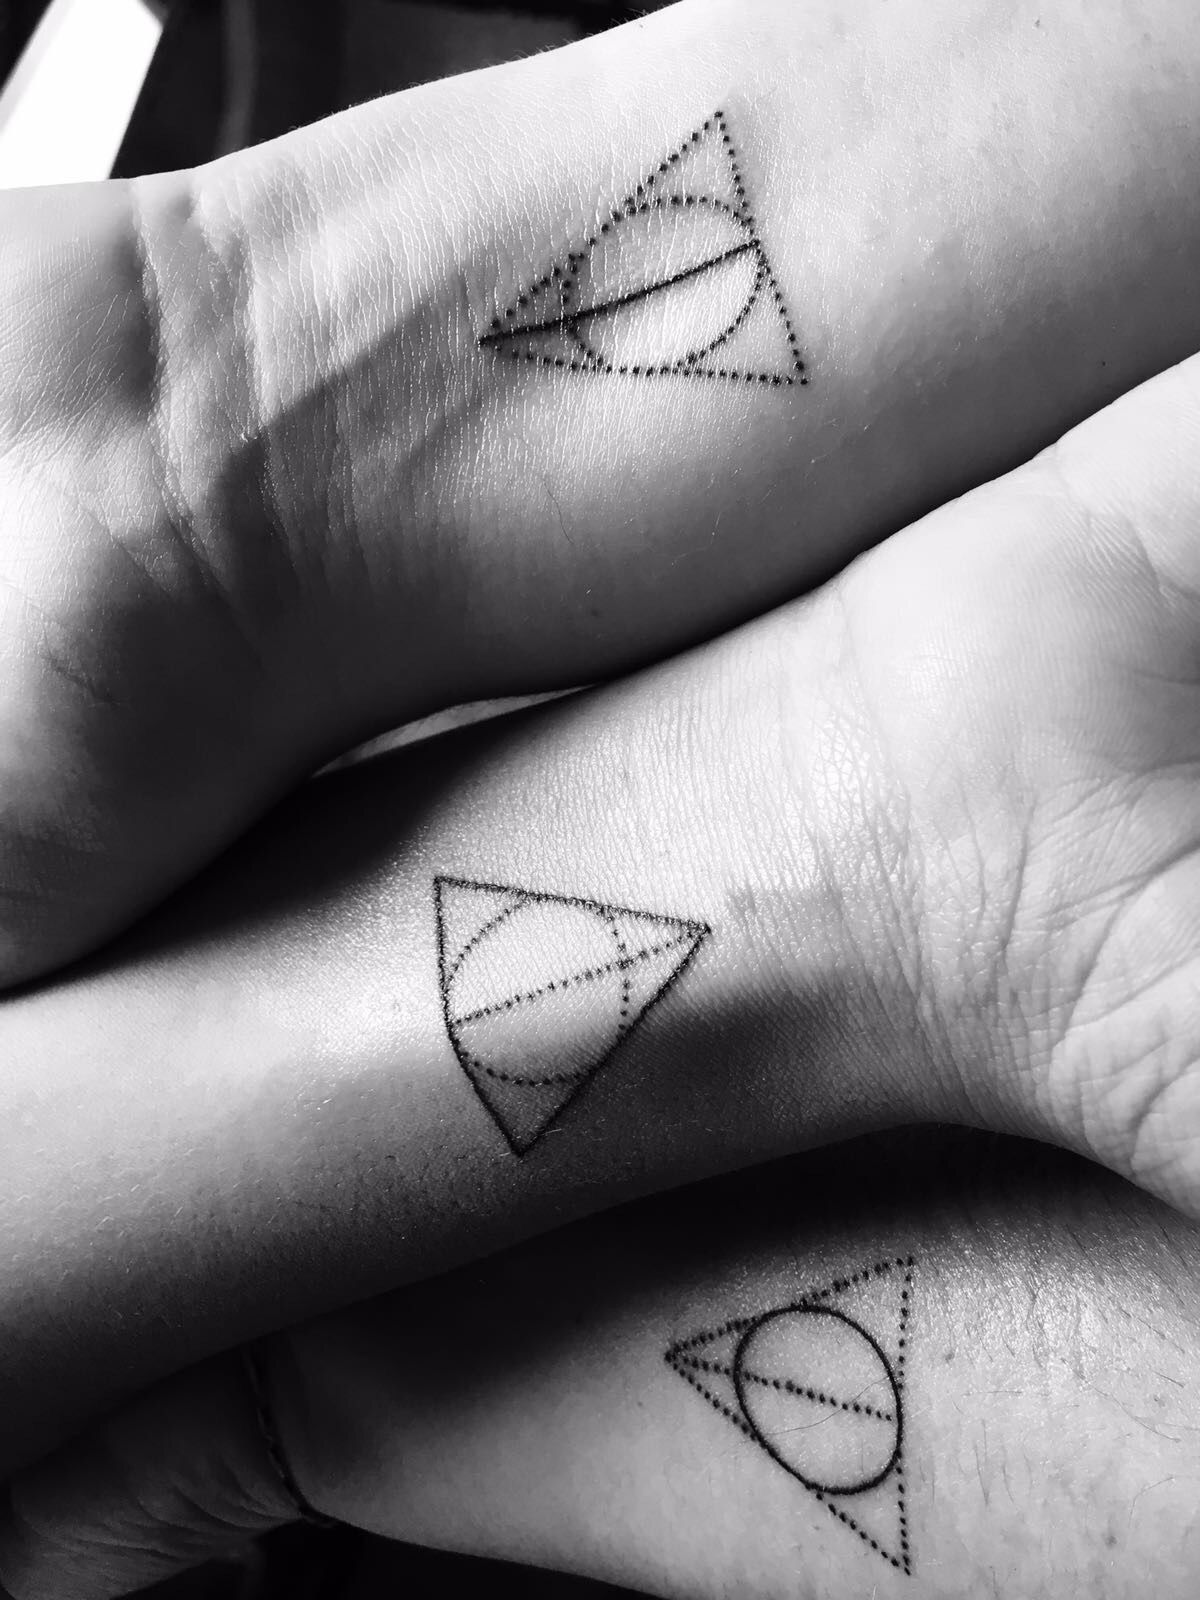 Tattoo ideas simple small pin by camille chautard on projet avenir  pinterest